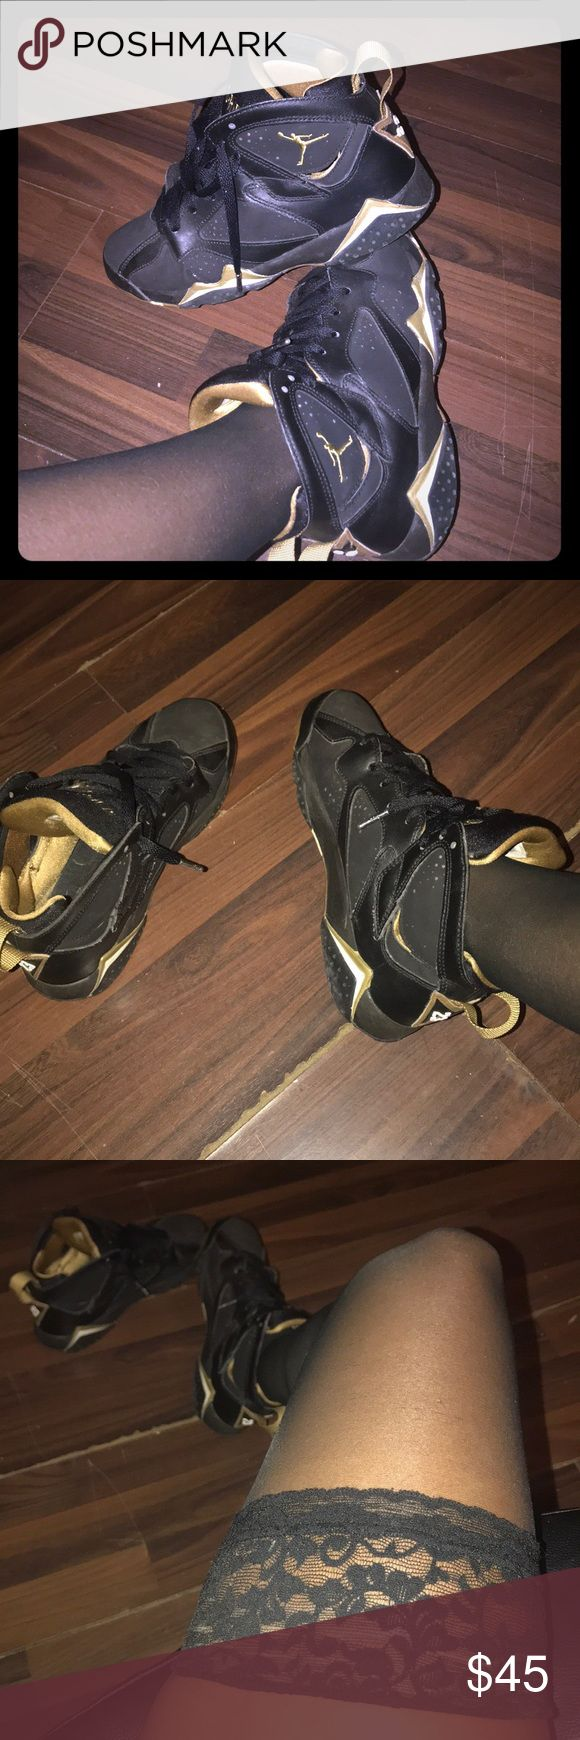 Jordan's black and gold authentic sneakers Black and gold Jordan's used Jordan's good condition authentic Jordan's Jordan Shoes Athletic Shoes